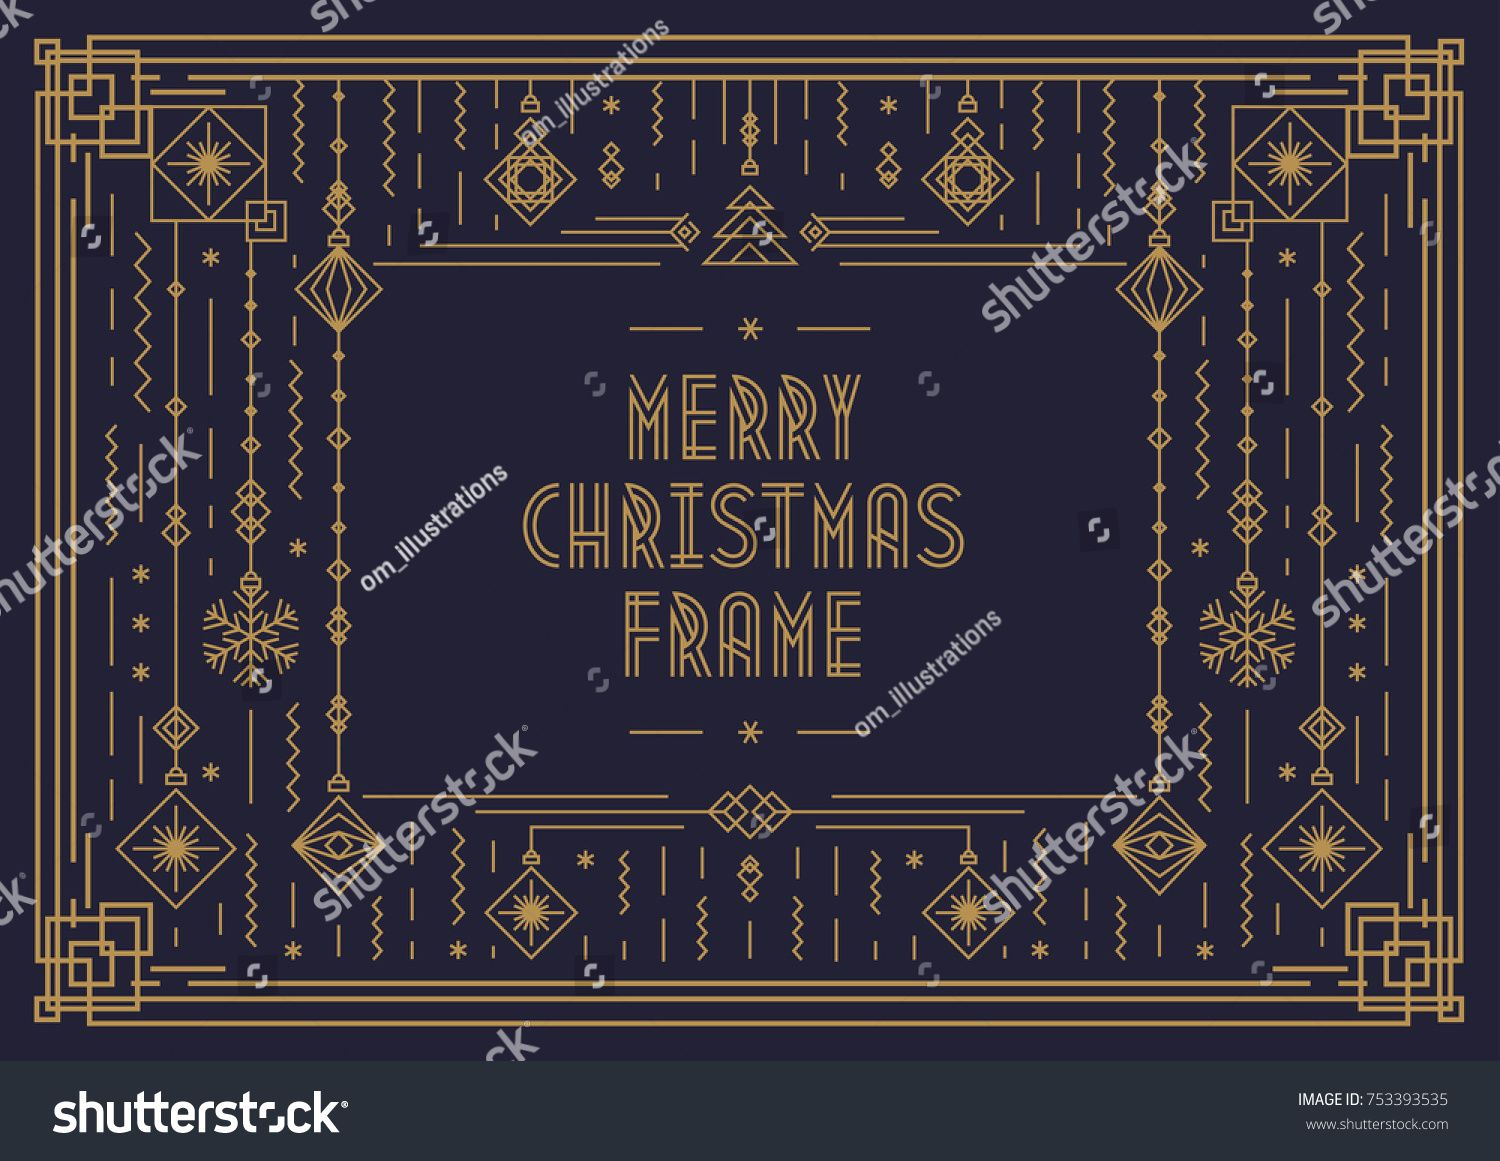 Merry Christmas Card Template With Frame And New Year Toy Art Deco Line Style Gold Color On Black Ba Merry Christmas Card Christmas Card Template Card Template